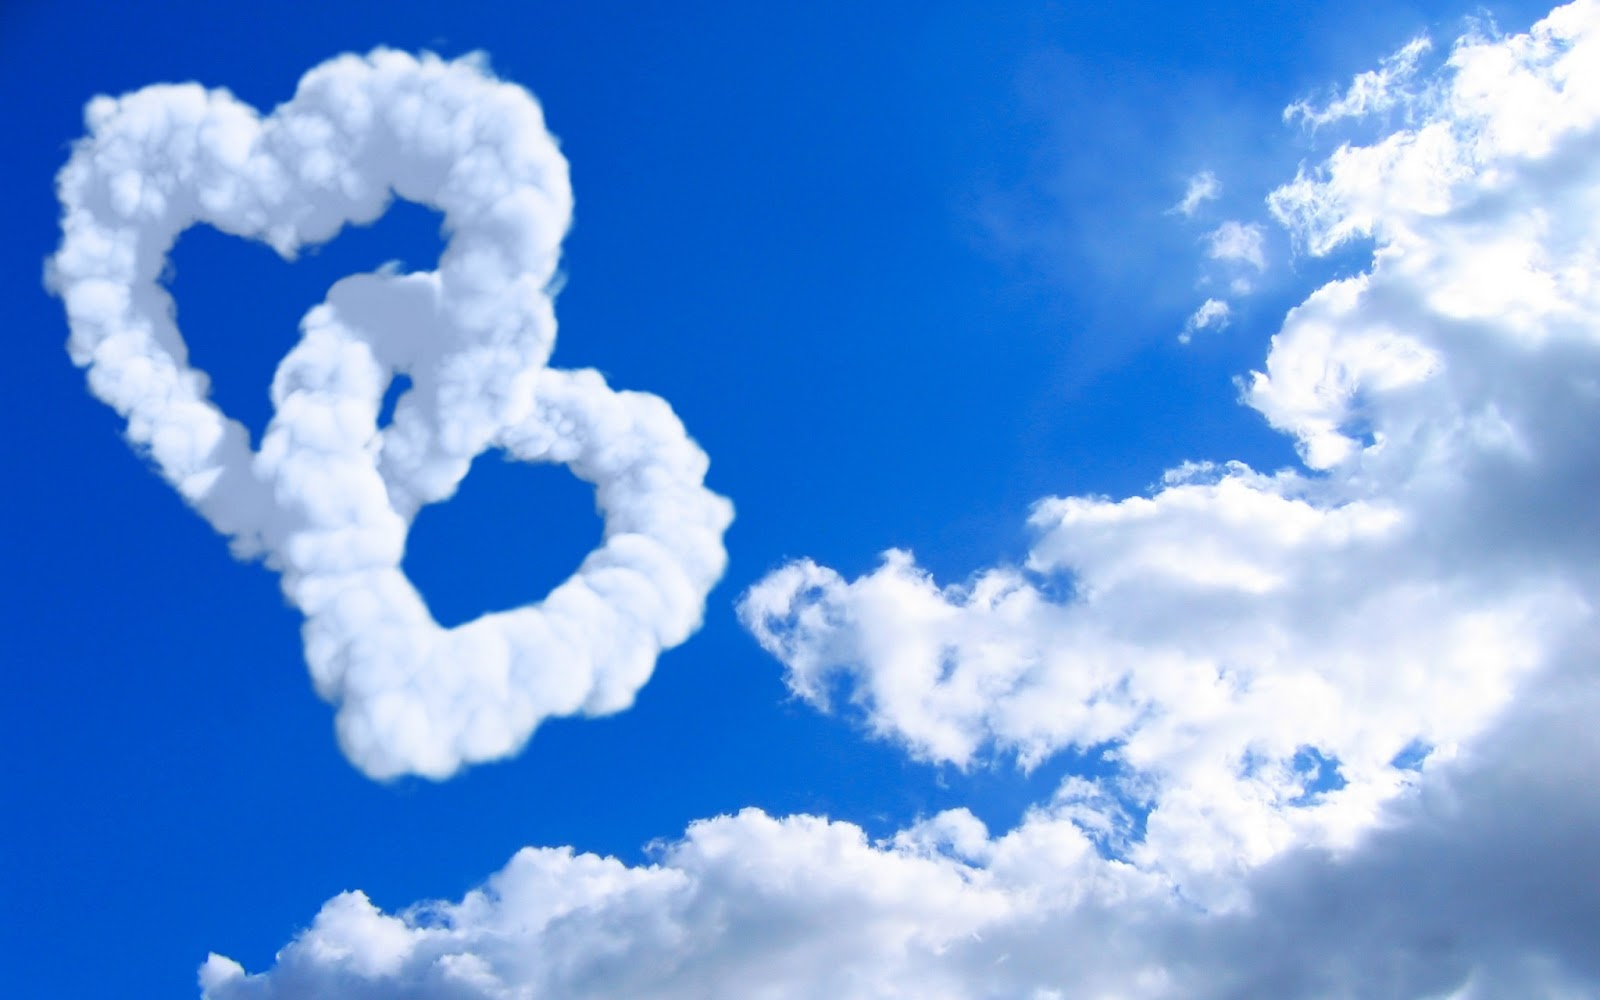 Love Wallpaper Backgrounds computer : Free Wallpaper Dekstop: 3d love with clouds wallpaper ...